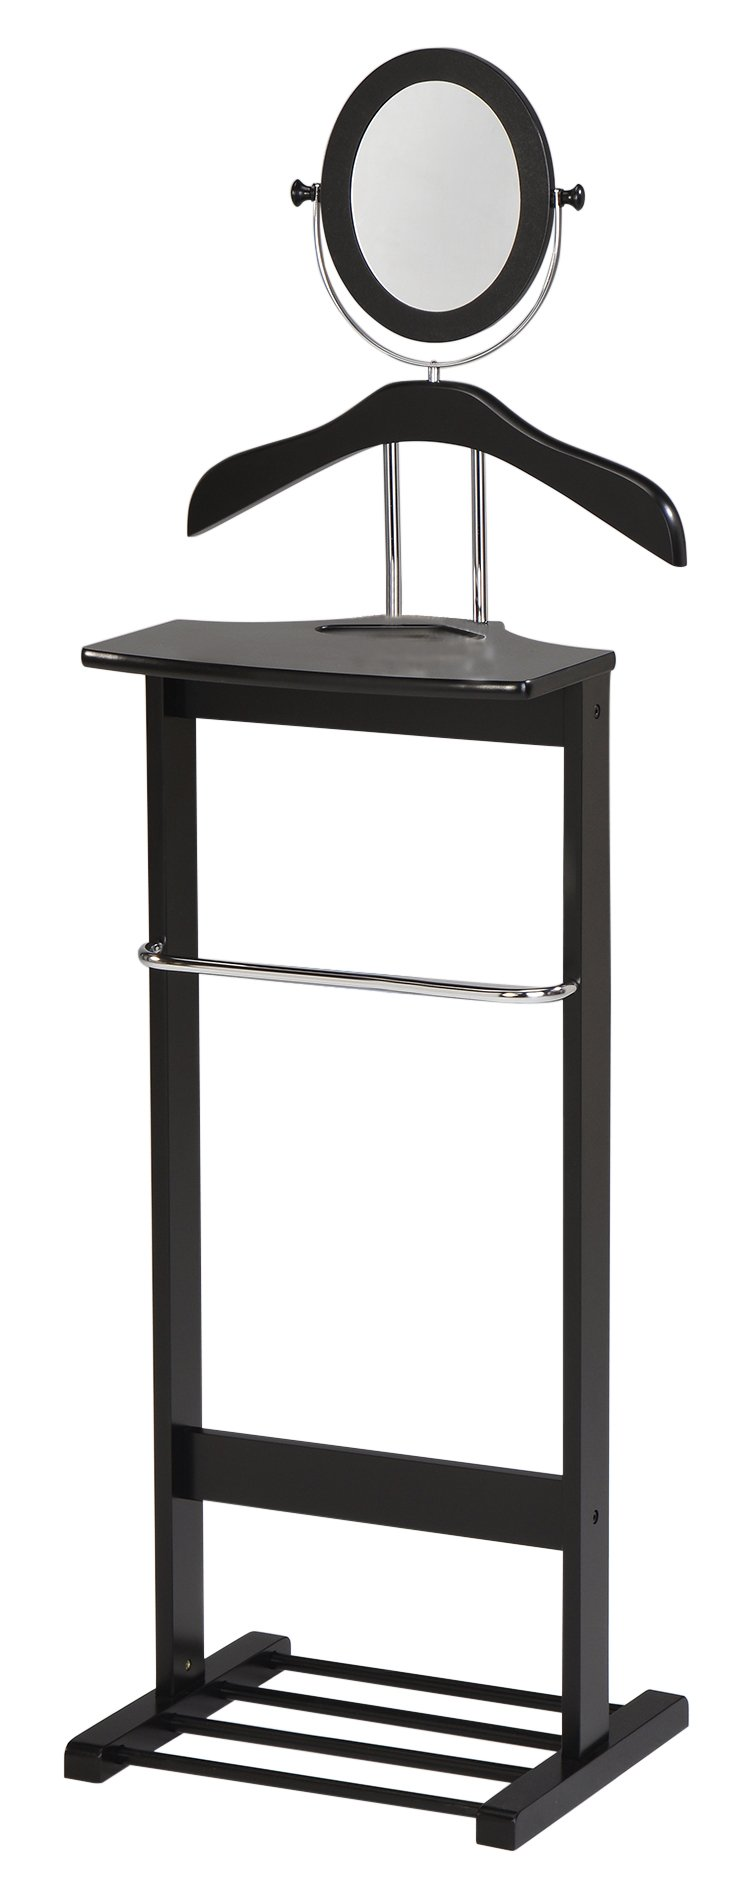 Kings Brand Millett Wood Suit Valet Stand Clothes Rack, Black/Chrome by Kings Brand Furniture